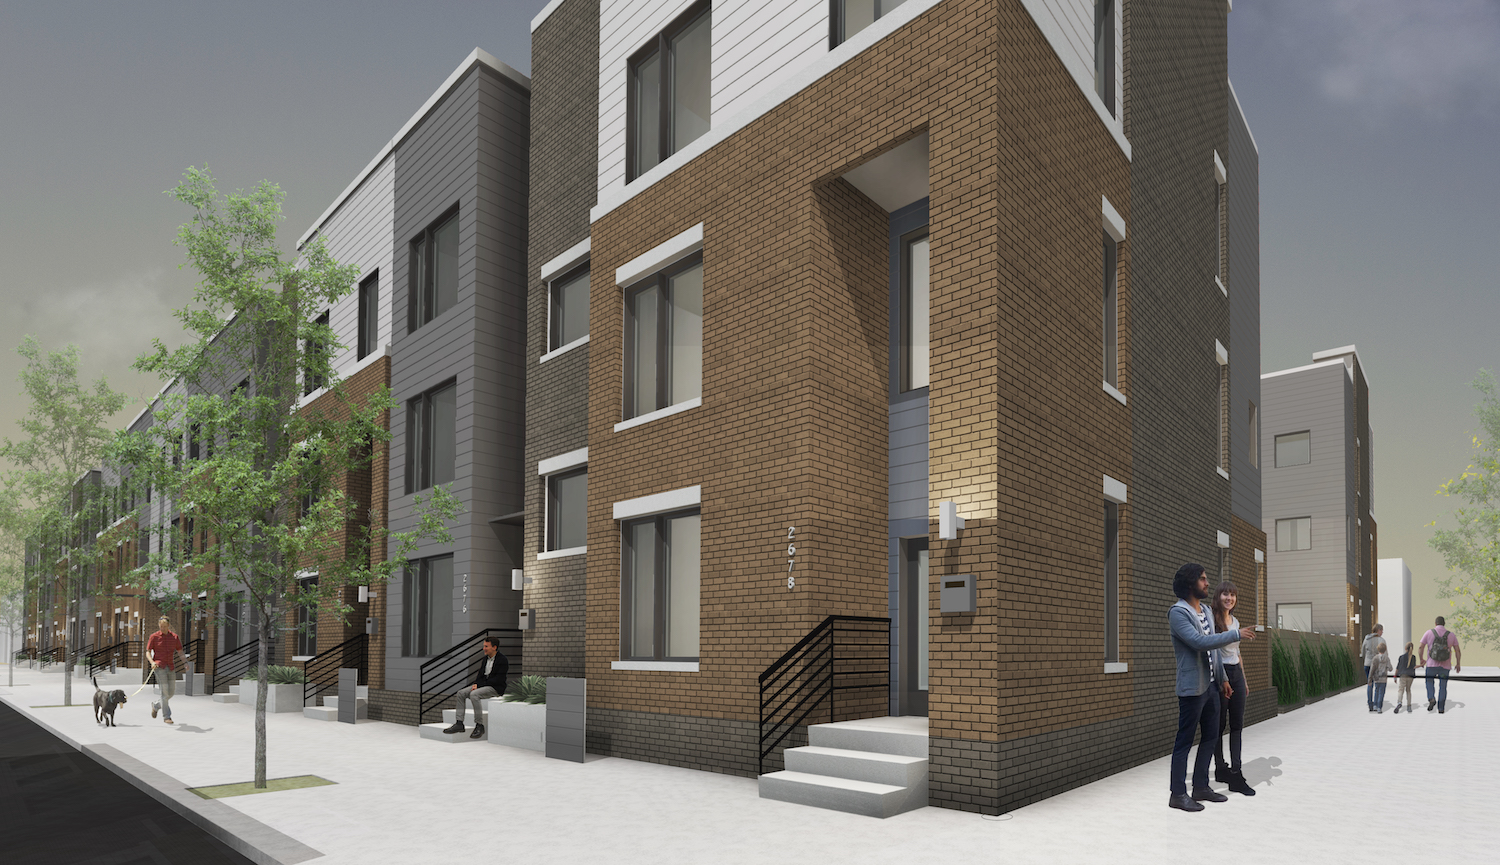 RiverWards Group's 30-unit townhouse development, 'Avenue 30' in East Kensington, broke ground March 2017. Credit: Renderings by KJO Architects via RiverWards Group/The Somers Team